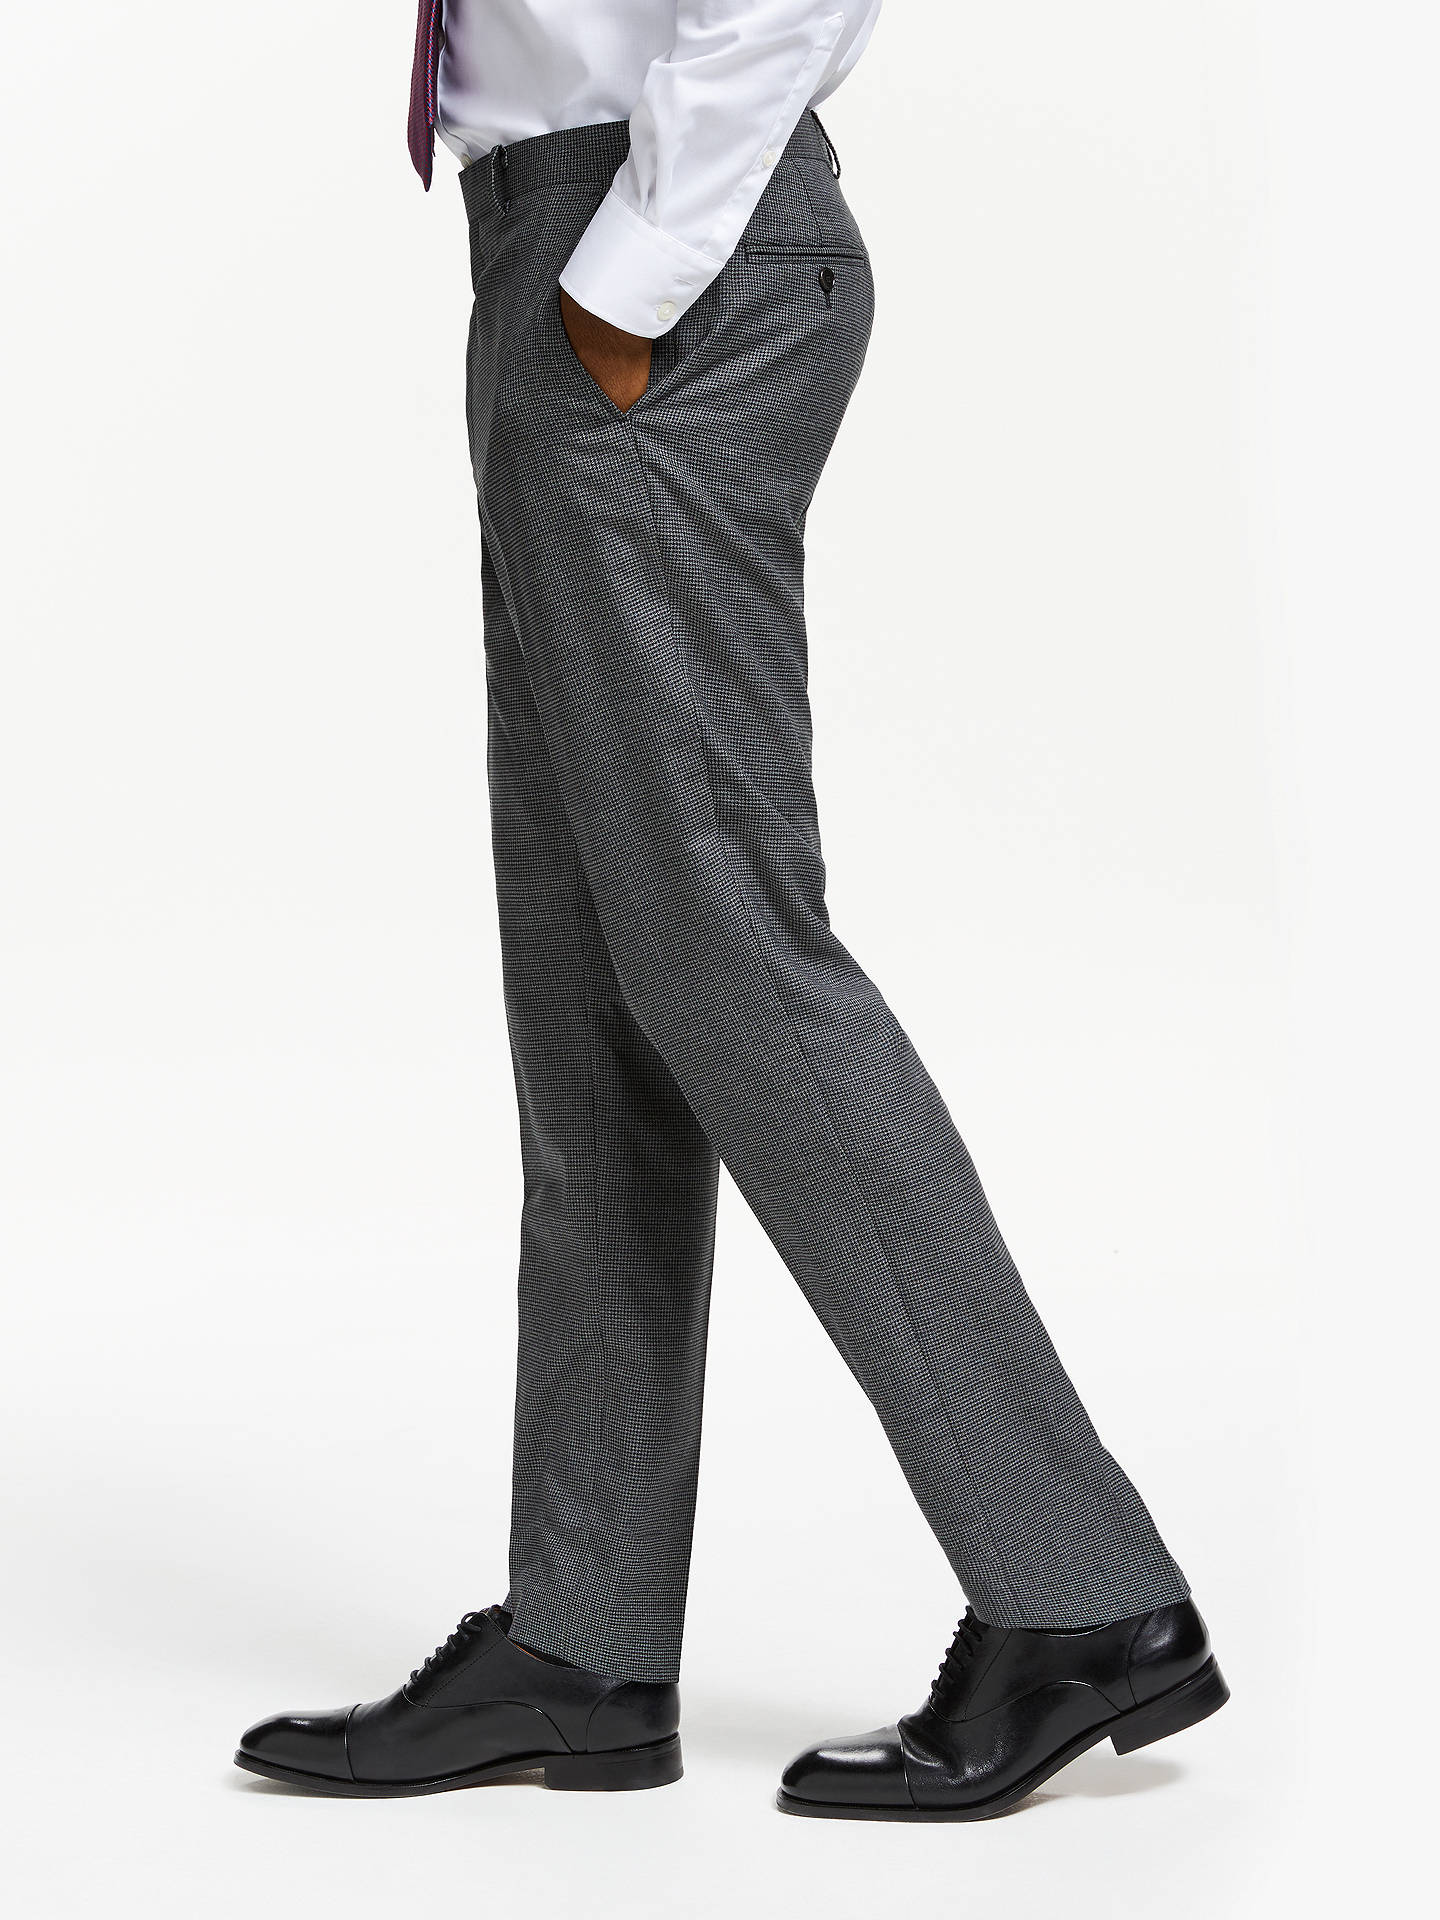 64a8ad542bf9 ... Buy John Lewis   Partners Wool Puppytooth Slim Fit Suit Trousers